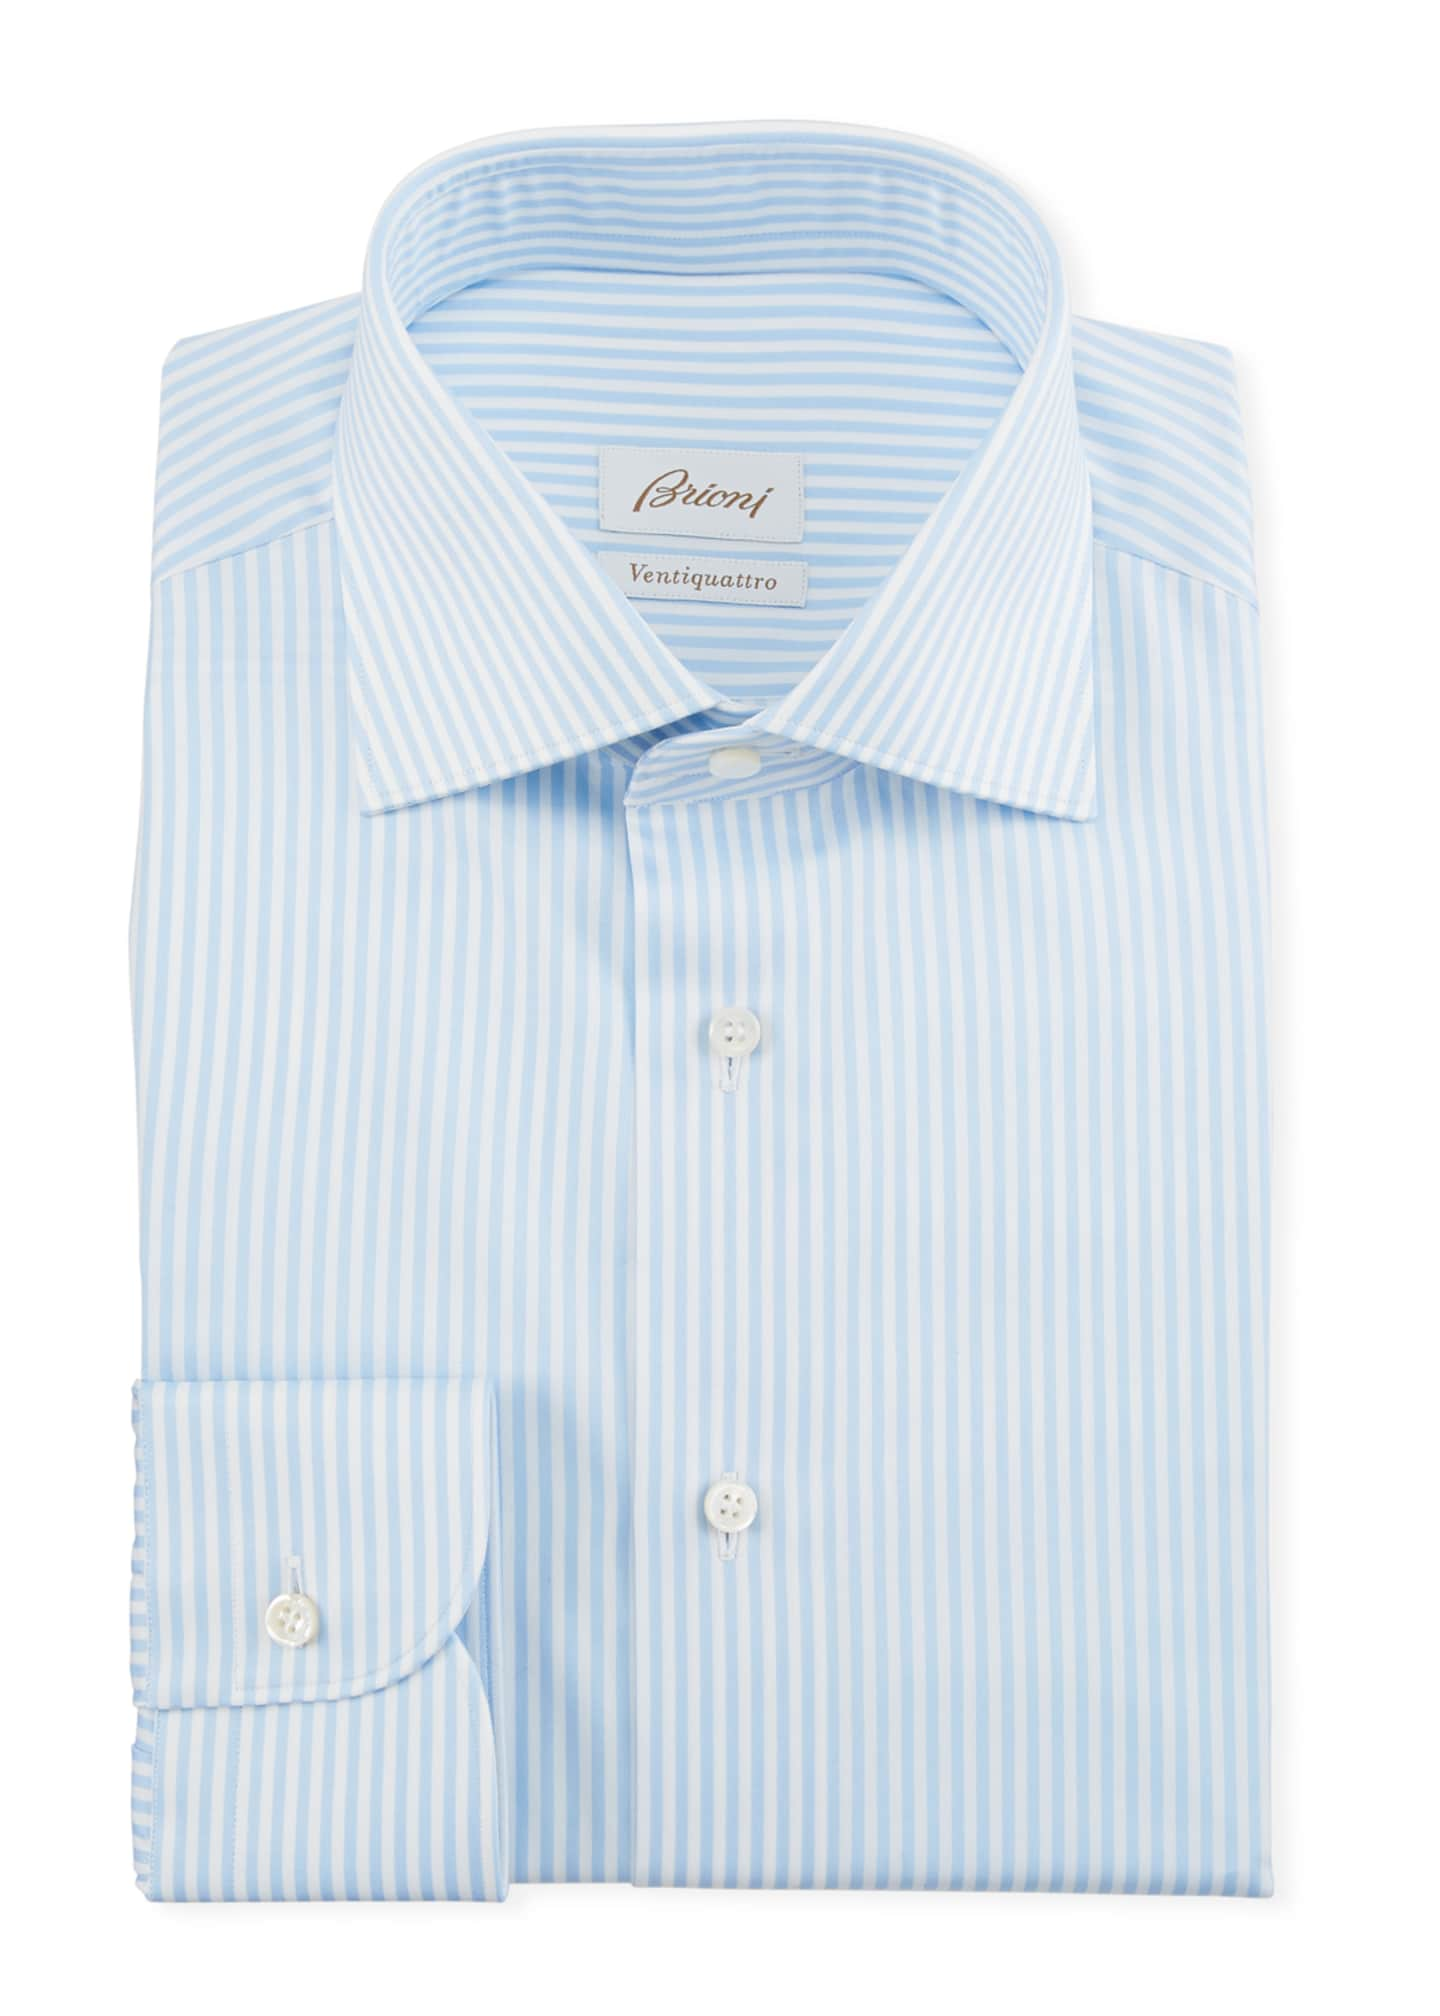 Brioni Men's Bengal Dress Shirt